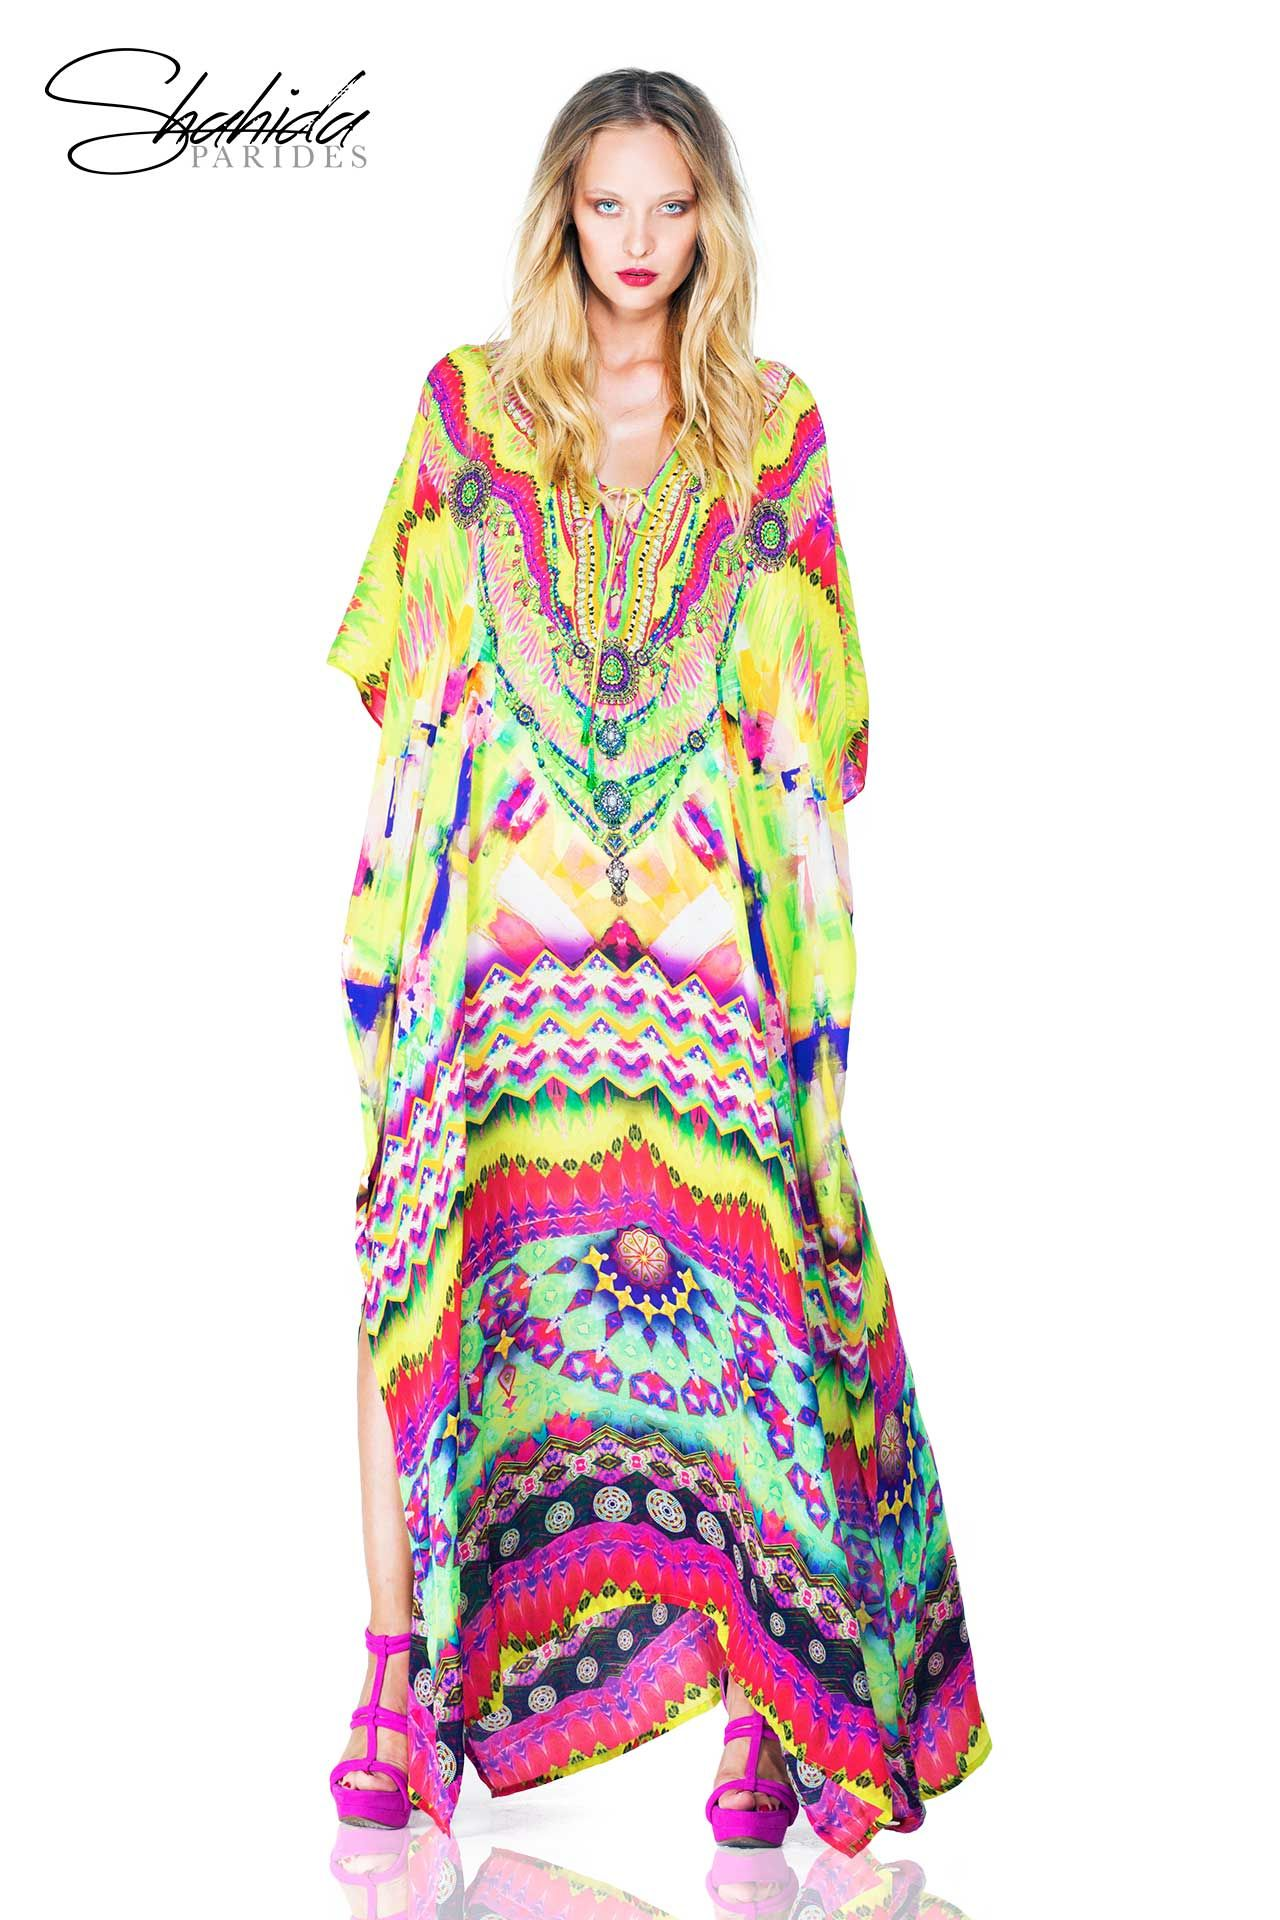 Shahida Parides Long Lace-up Kaftan as seen on Kyle Richards of RHOBH e7452857588